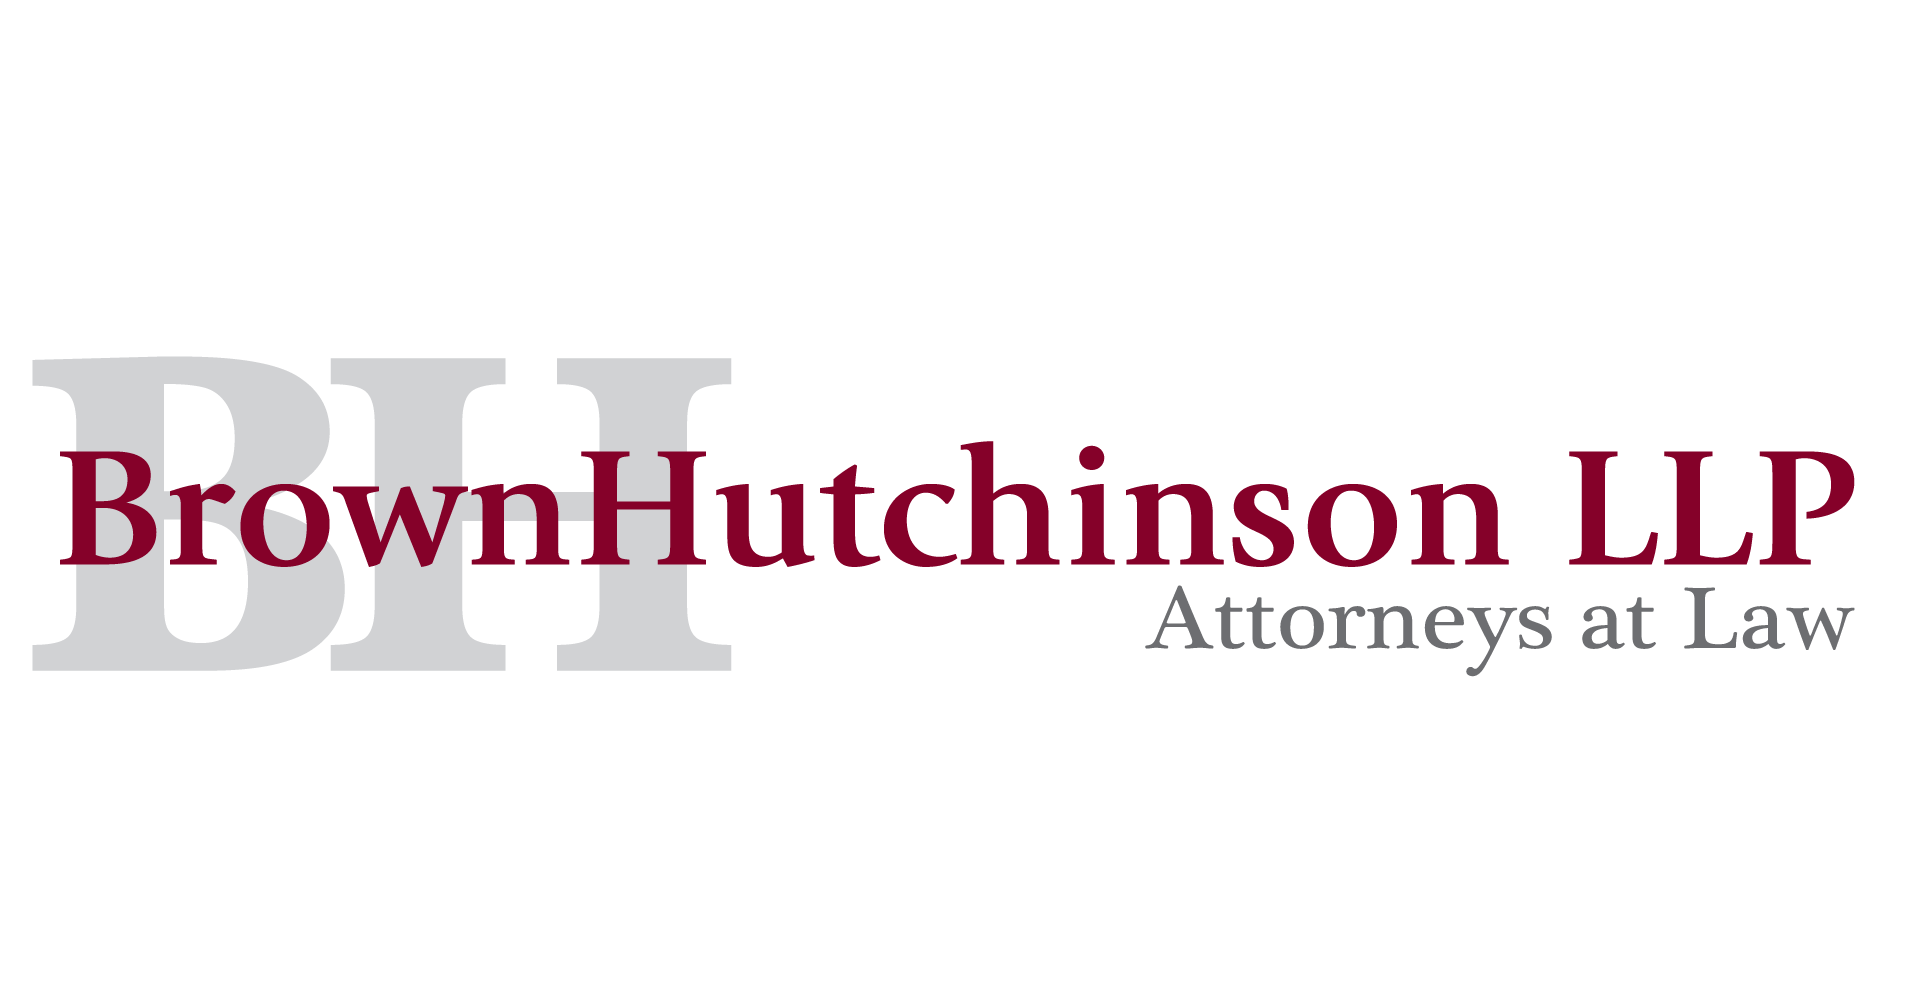 BrownHutchinson LLP is are Attorneys at Law in The CrossRoads Building.